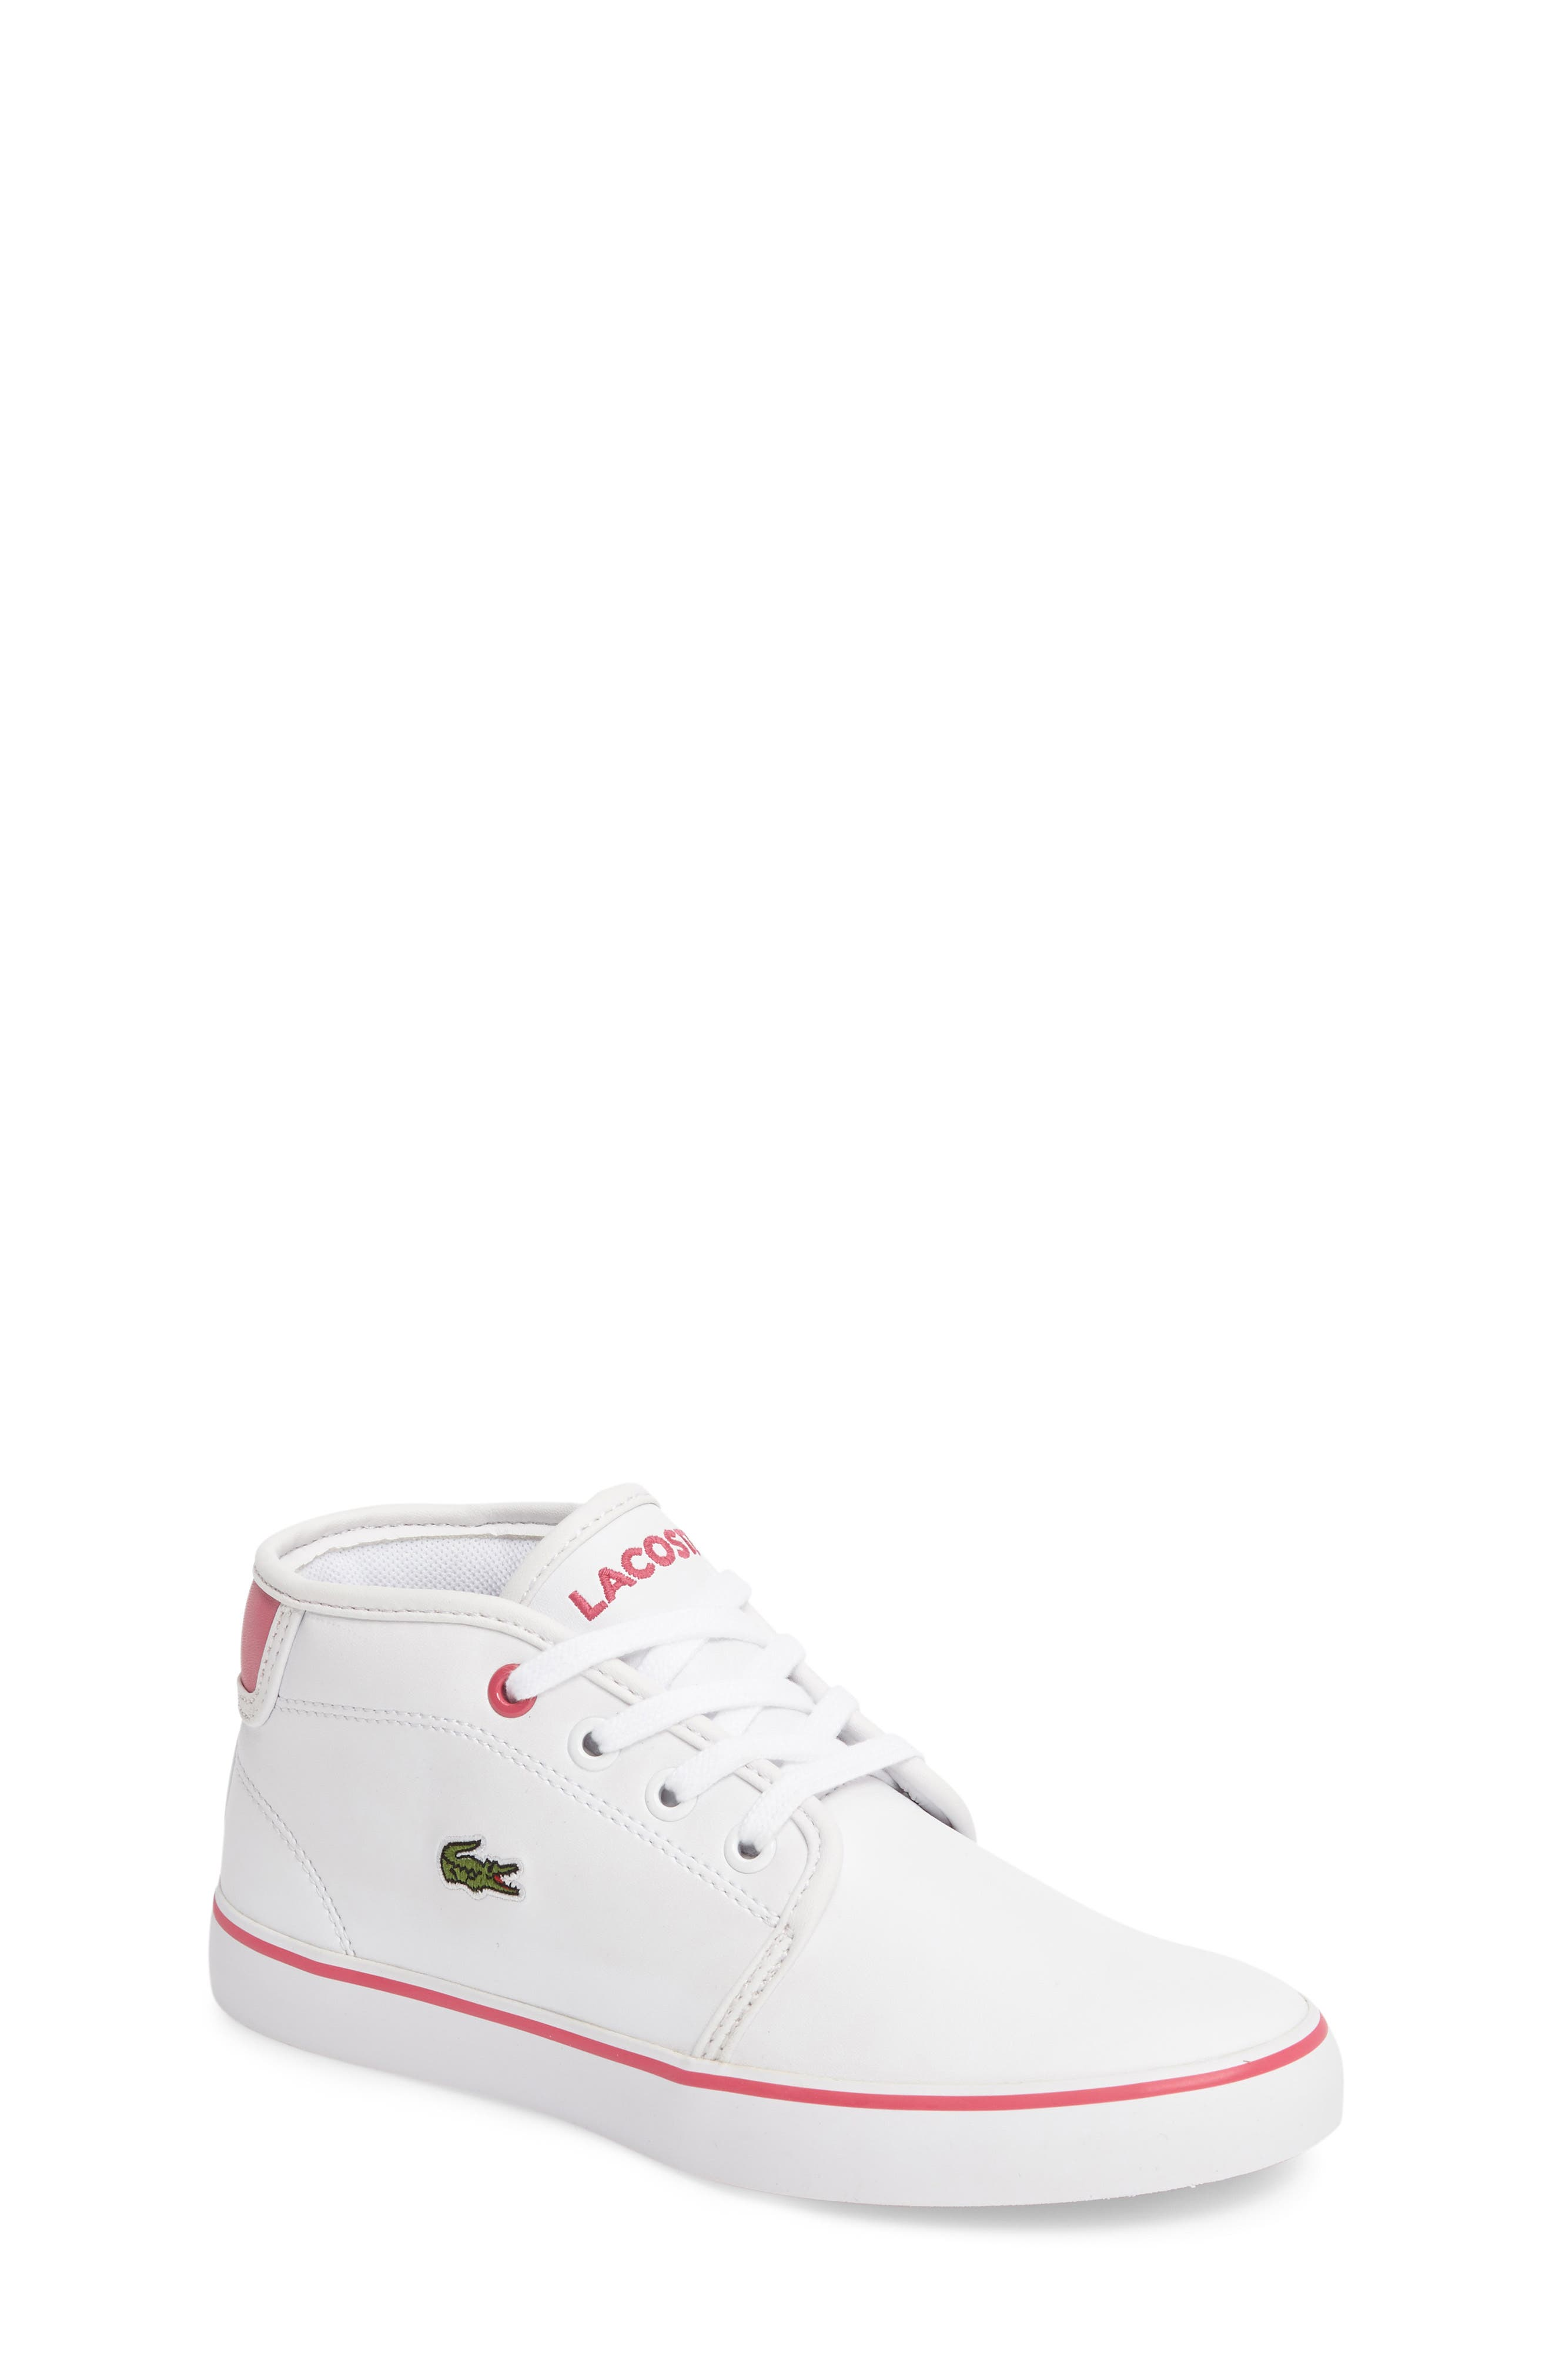 LACOSTE Ampthill Mid-Top Sneaker